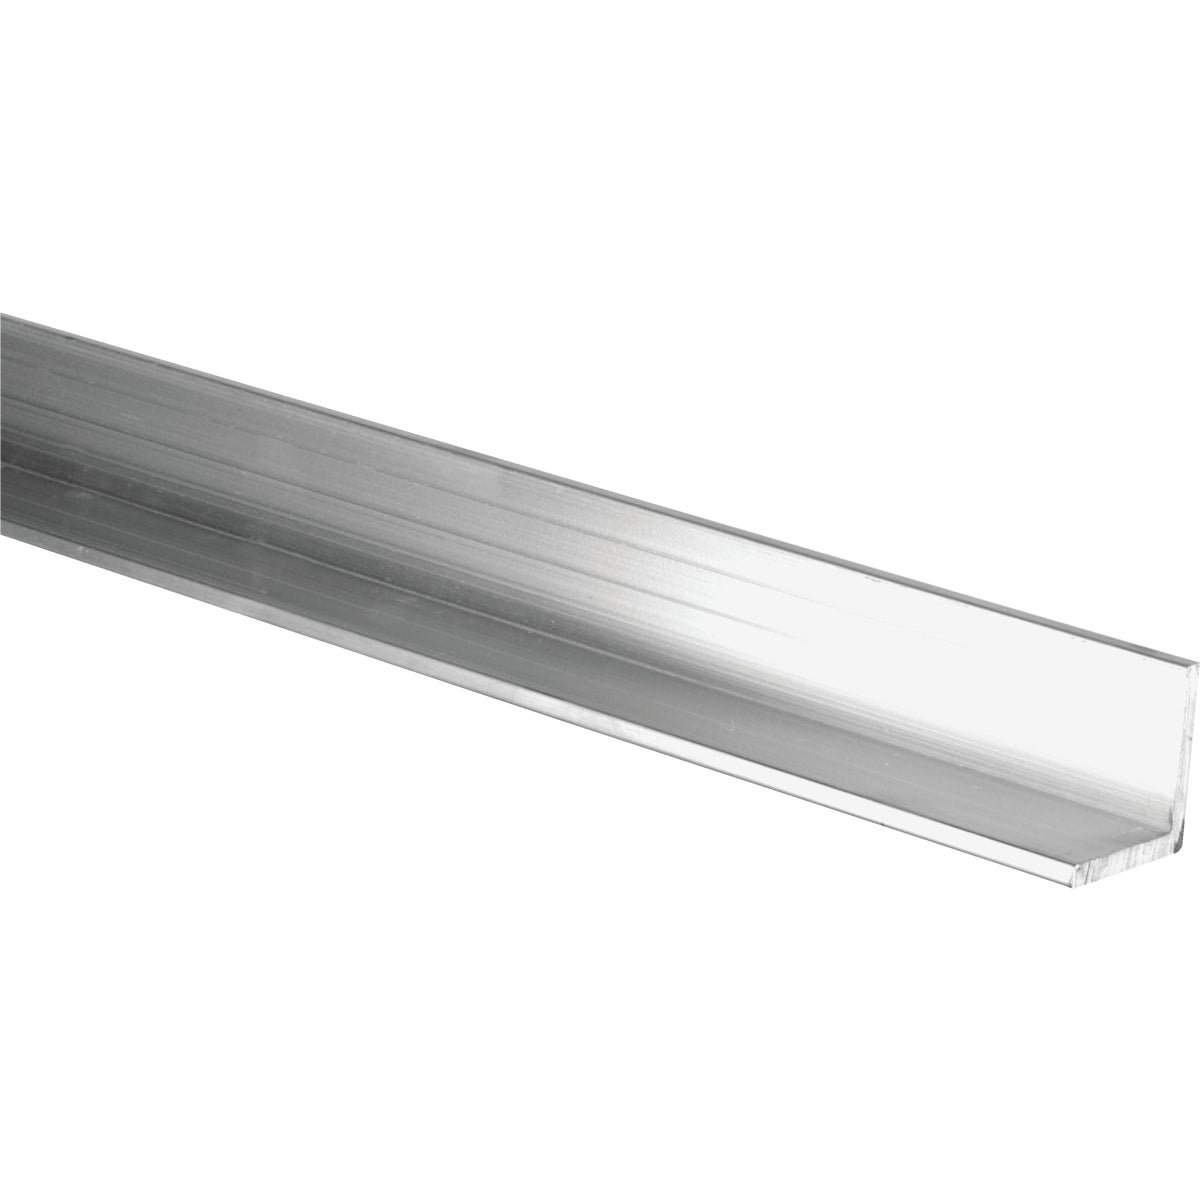 1/16X3/4X6' ALUM ANGLE - N247304 by National Mfg Co